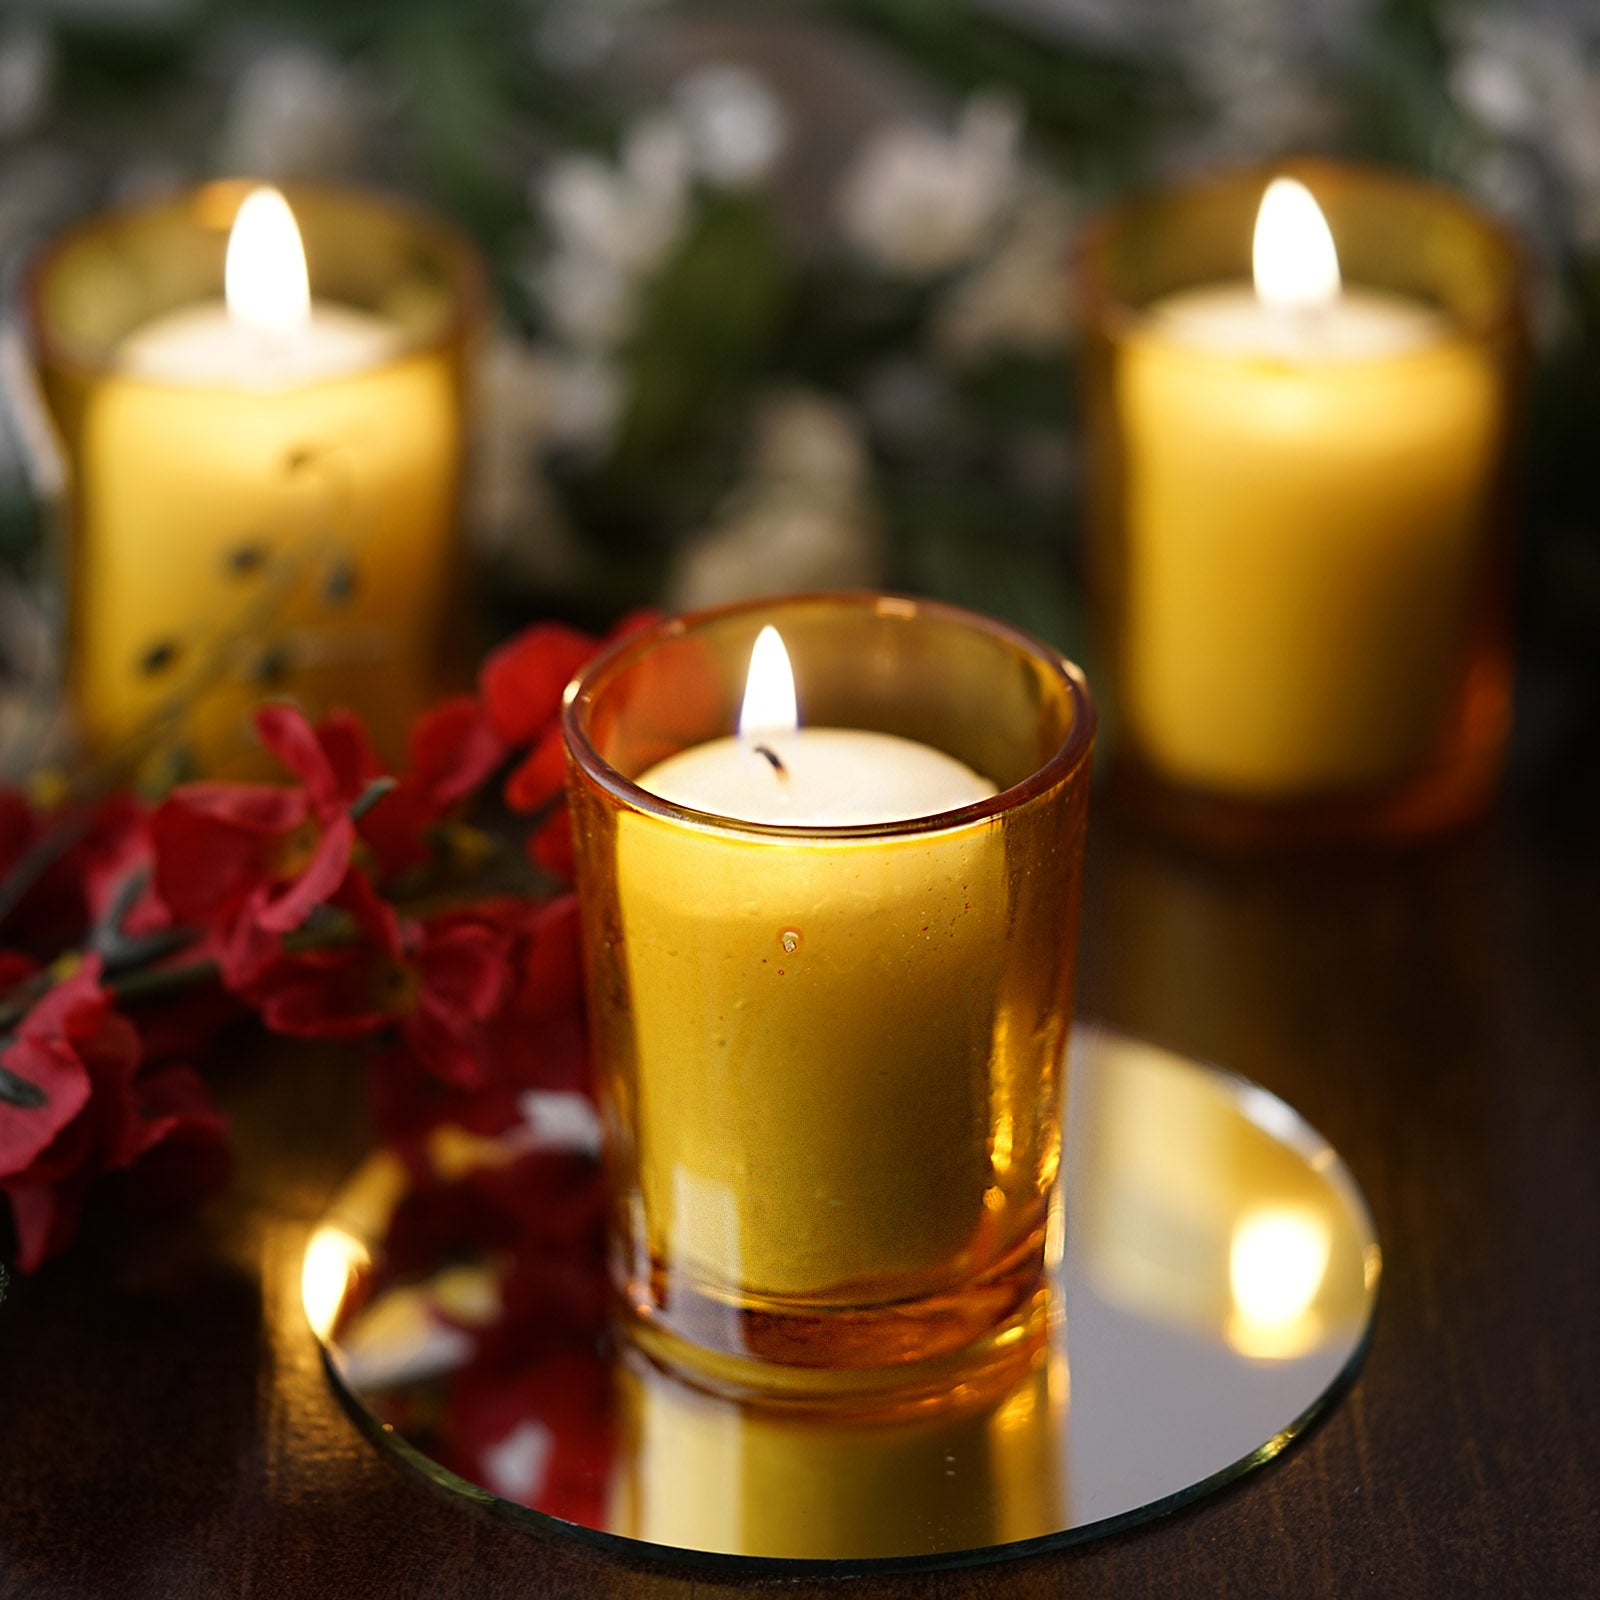 67a4be223 12 Pack White Votive Candles with Amber Votive Holders